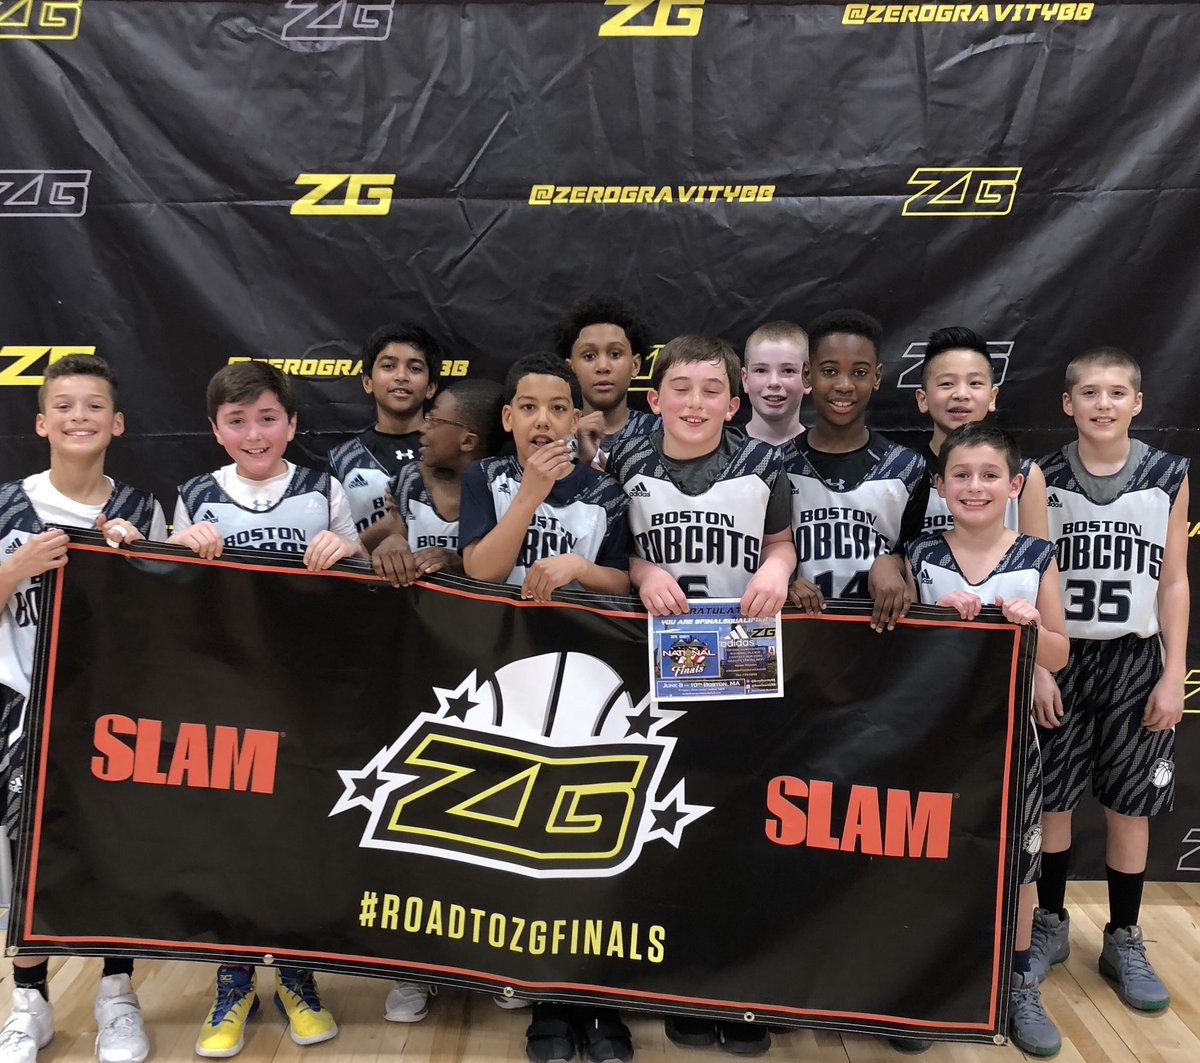 Boston Bobcats: 5th Grade Wins Zero Gravity Tournament To Start The Season